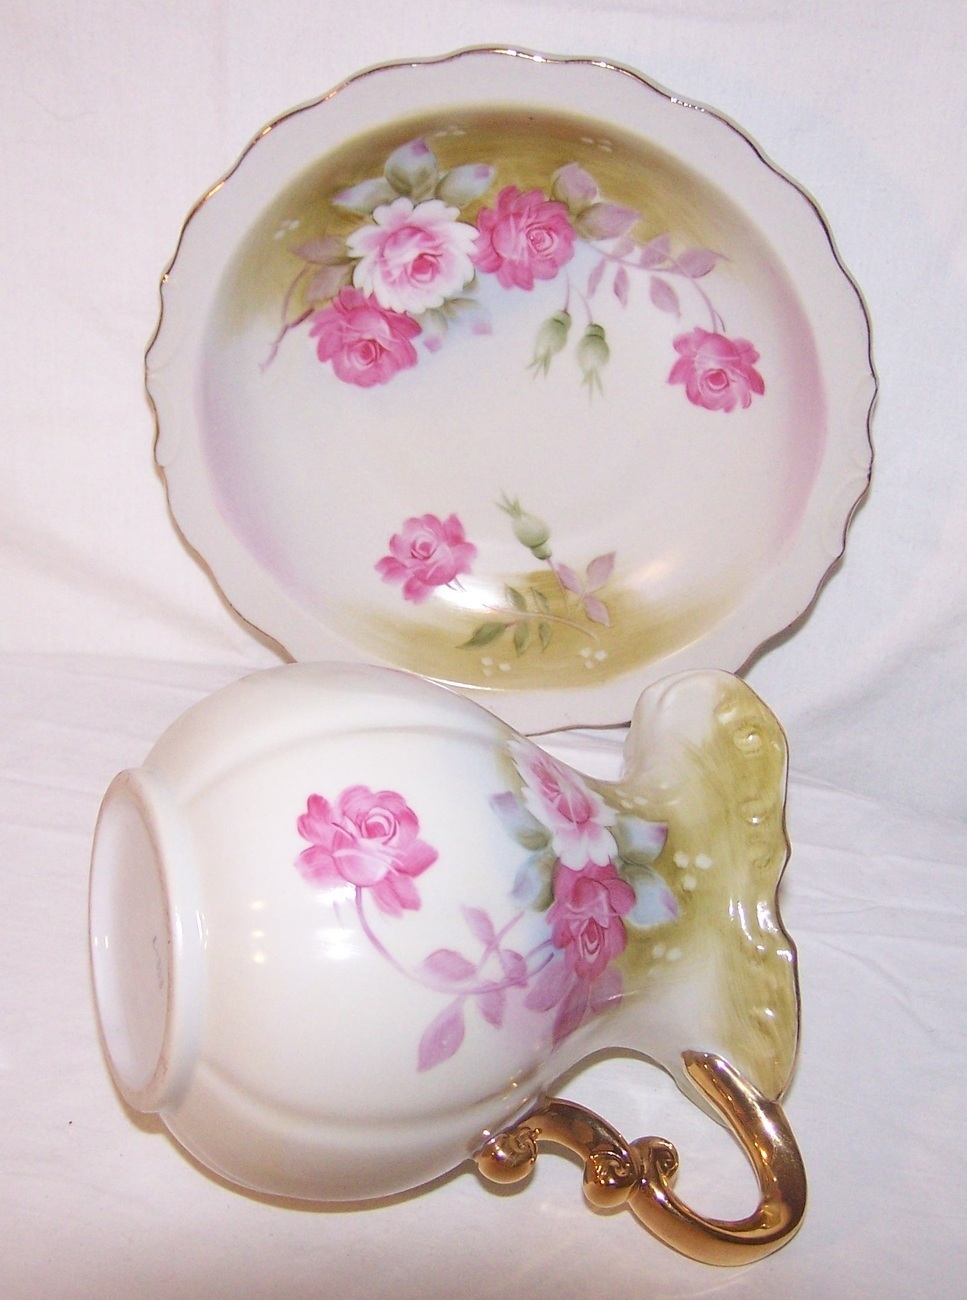 Norcrest Lefton China Green Heritage Pitcher Bowl L 353 Vintage Floral Pink